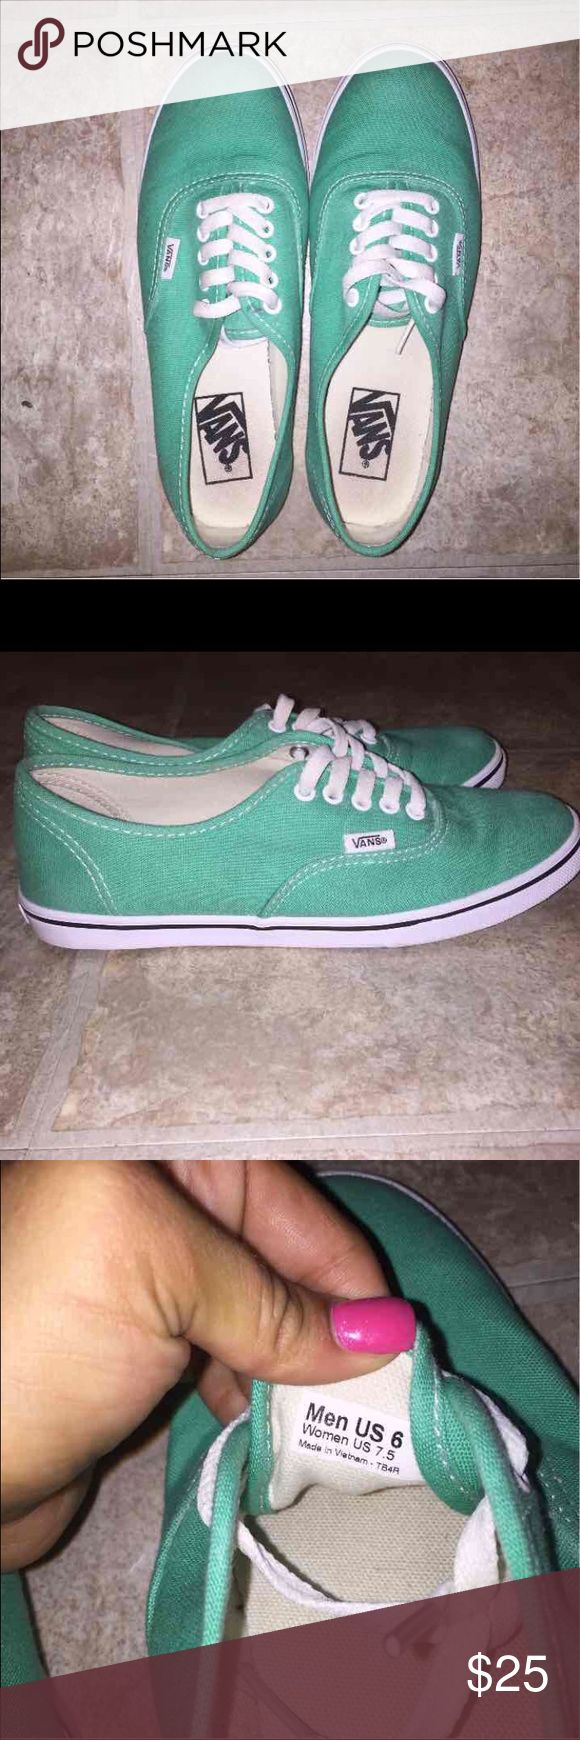 Teal Vans Great Condition! Like New! Vans Shoes